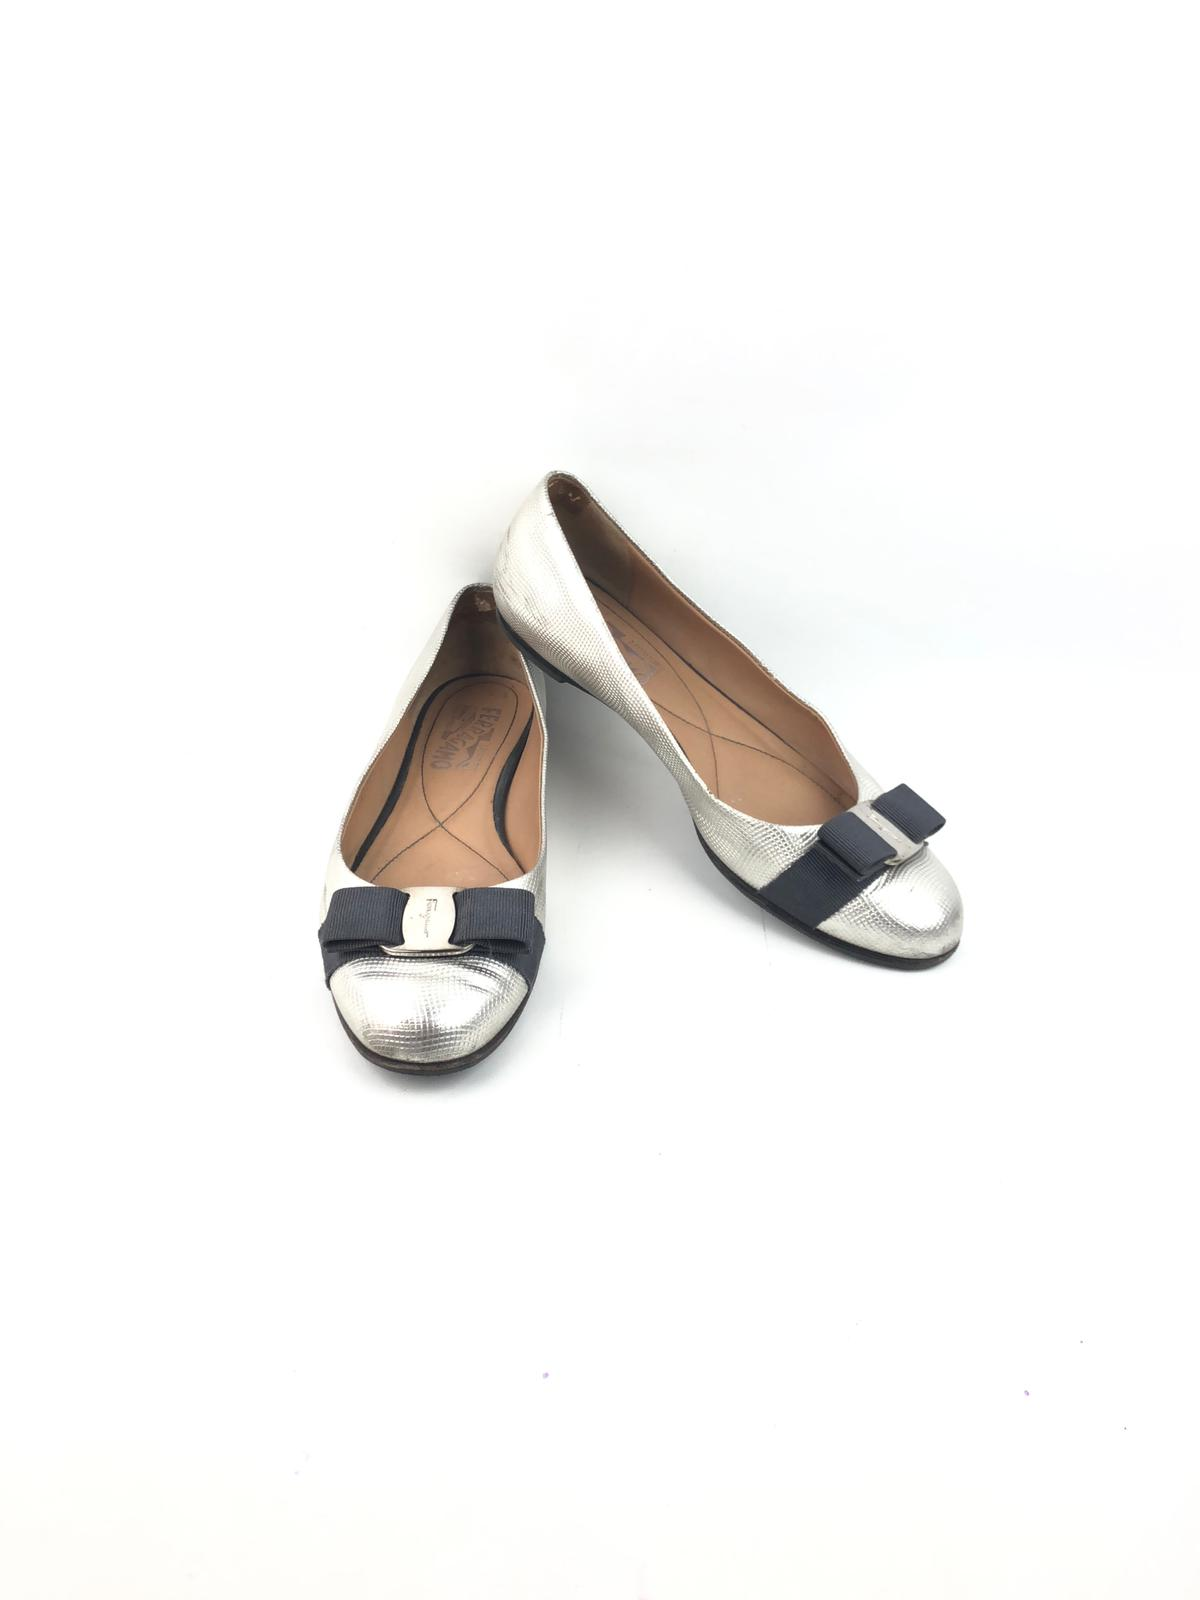 SALVATORE FERRAGAMO Silver Grained Leather Ballet Flats w/ Bows SHW